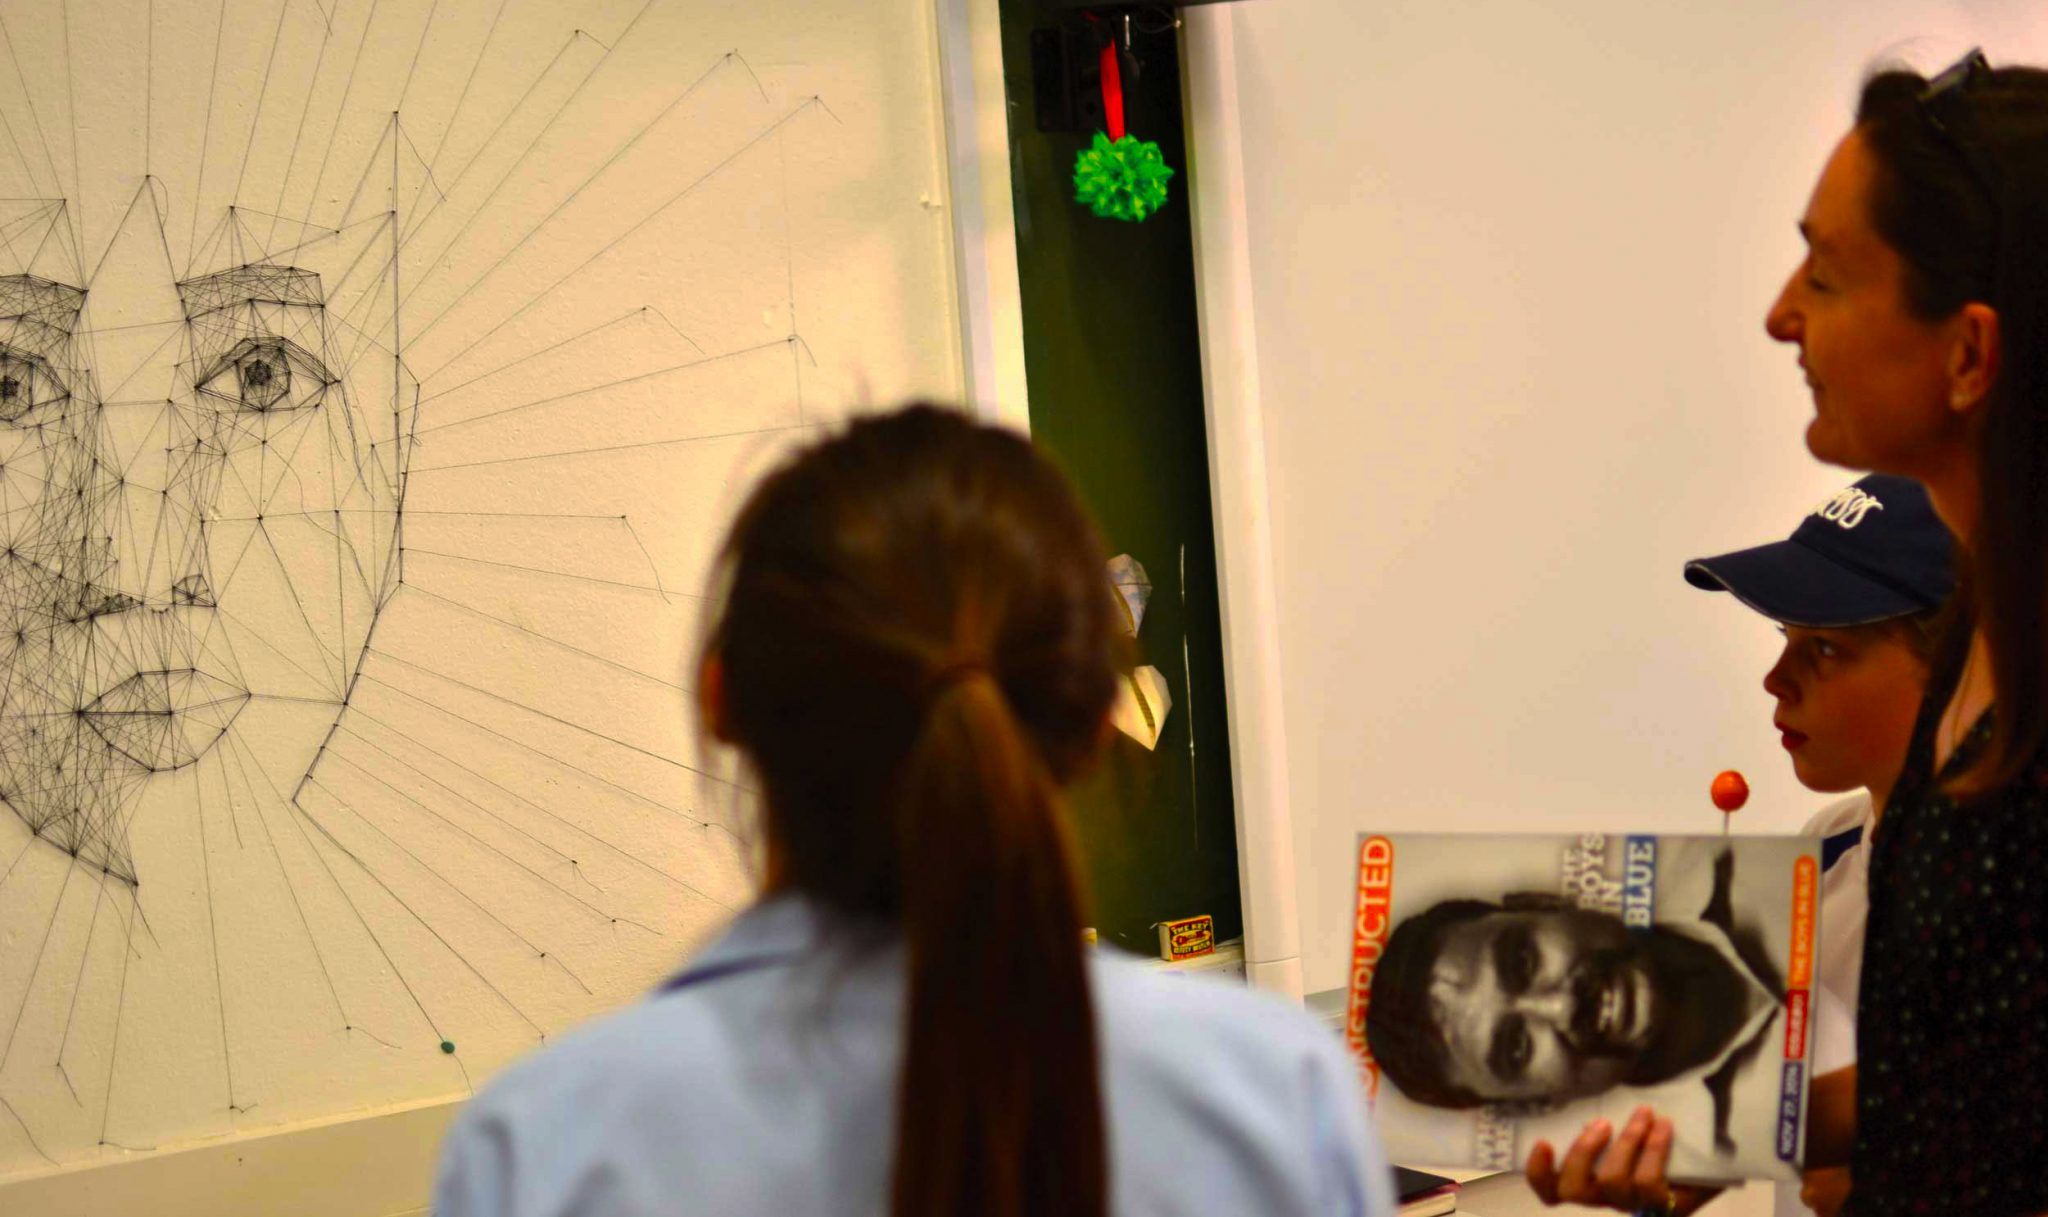 Dubai College student and colleagues viewing a scientific way of understanding how to draw the human face